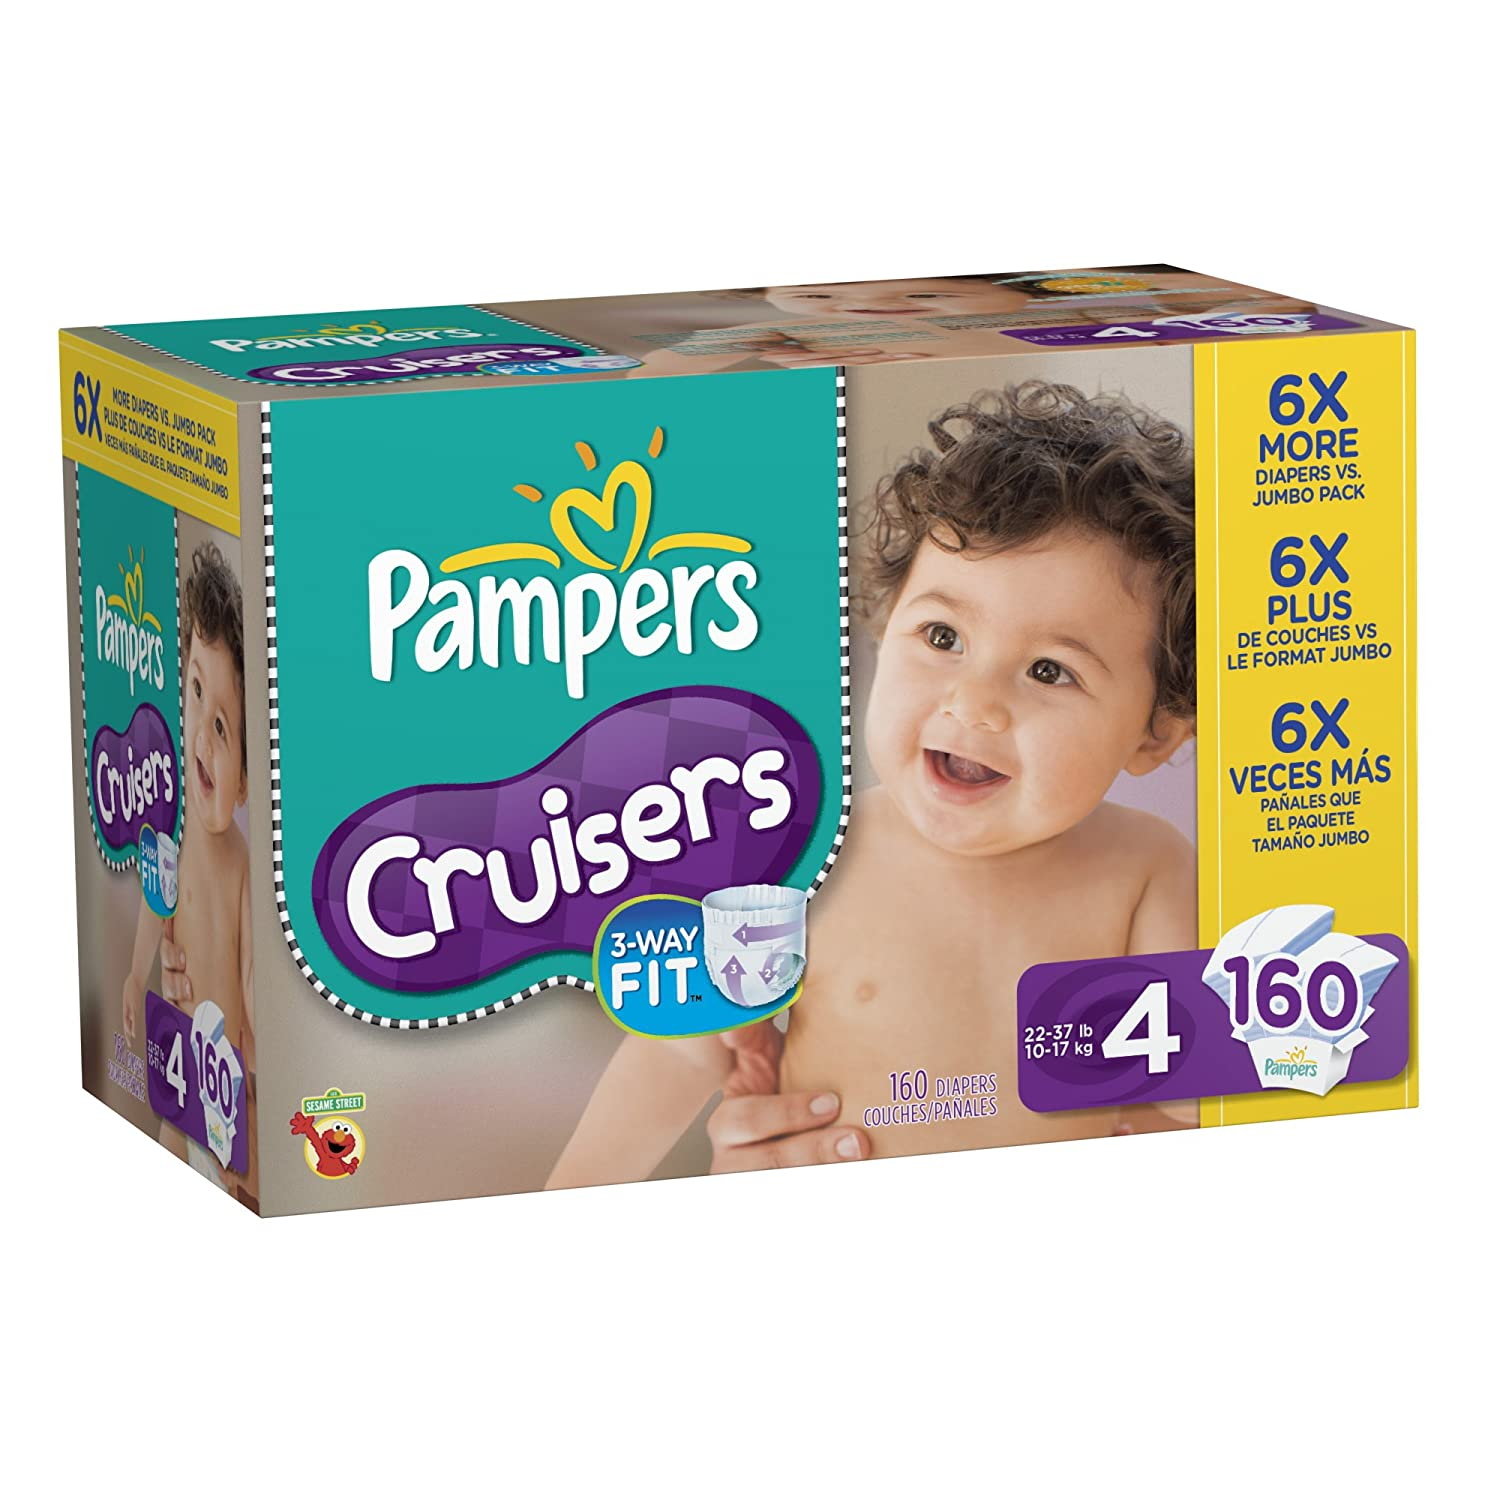 Amazon - Pampers Diapers Sale: 20% off, $2 off - from $34.79